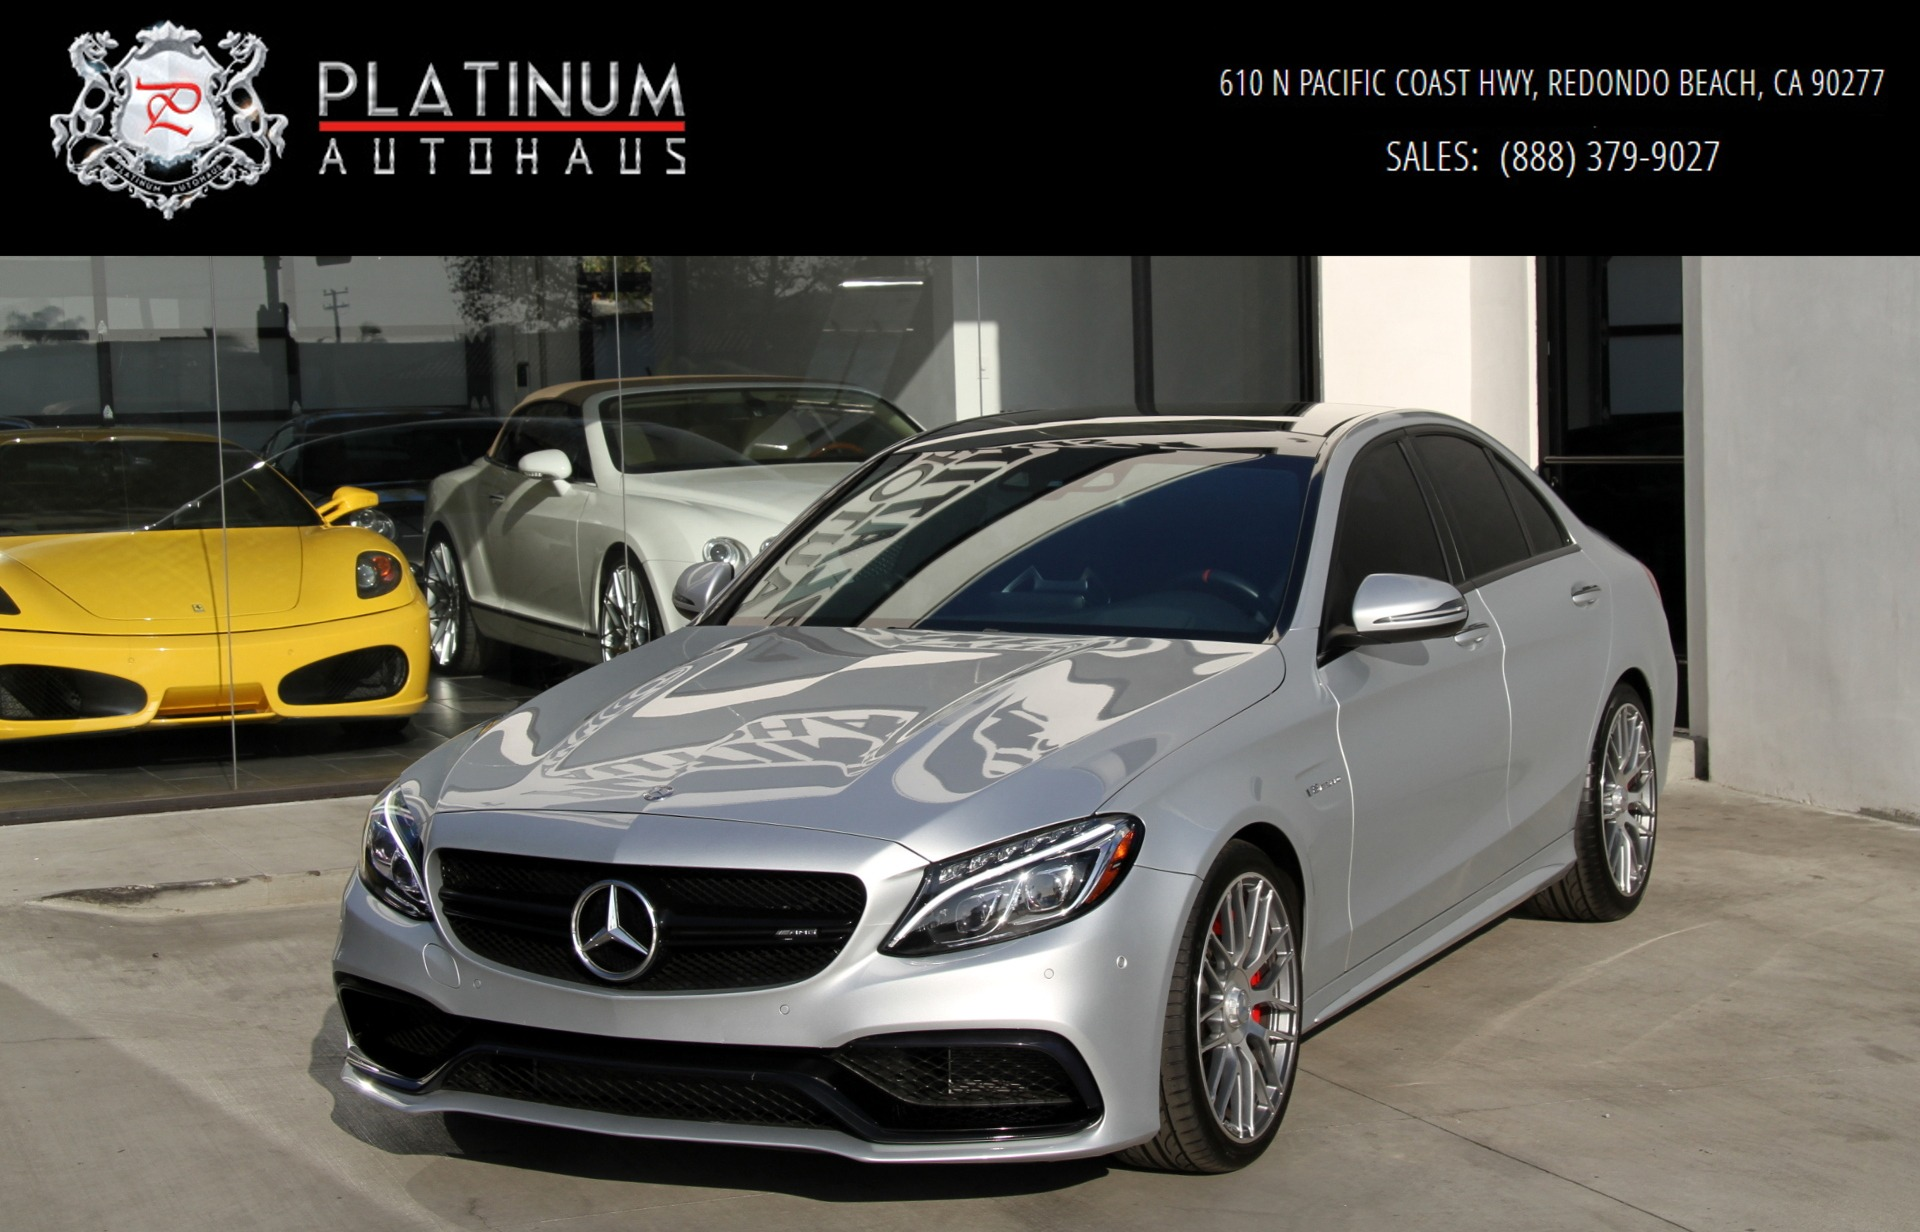 2016 mercedes benz c63 s amg stock 6004 for sale near for Mercedes benz near me